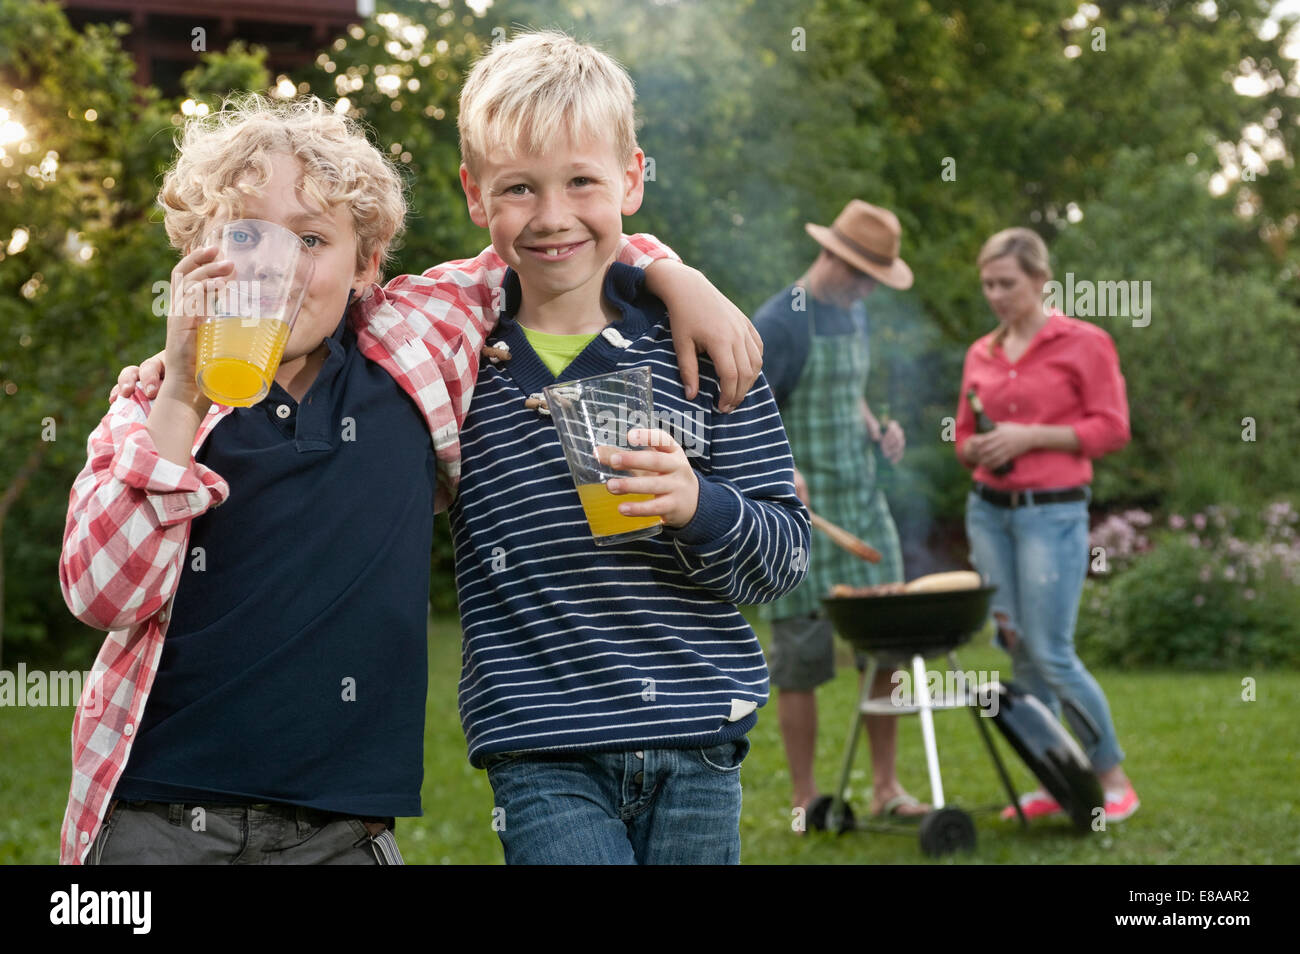 Family barbecue parents boys friends garden - Stock Image